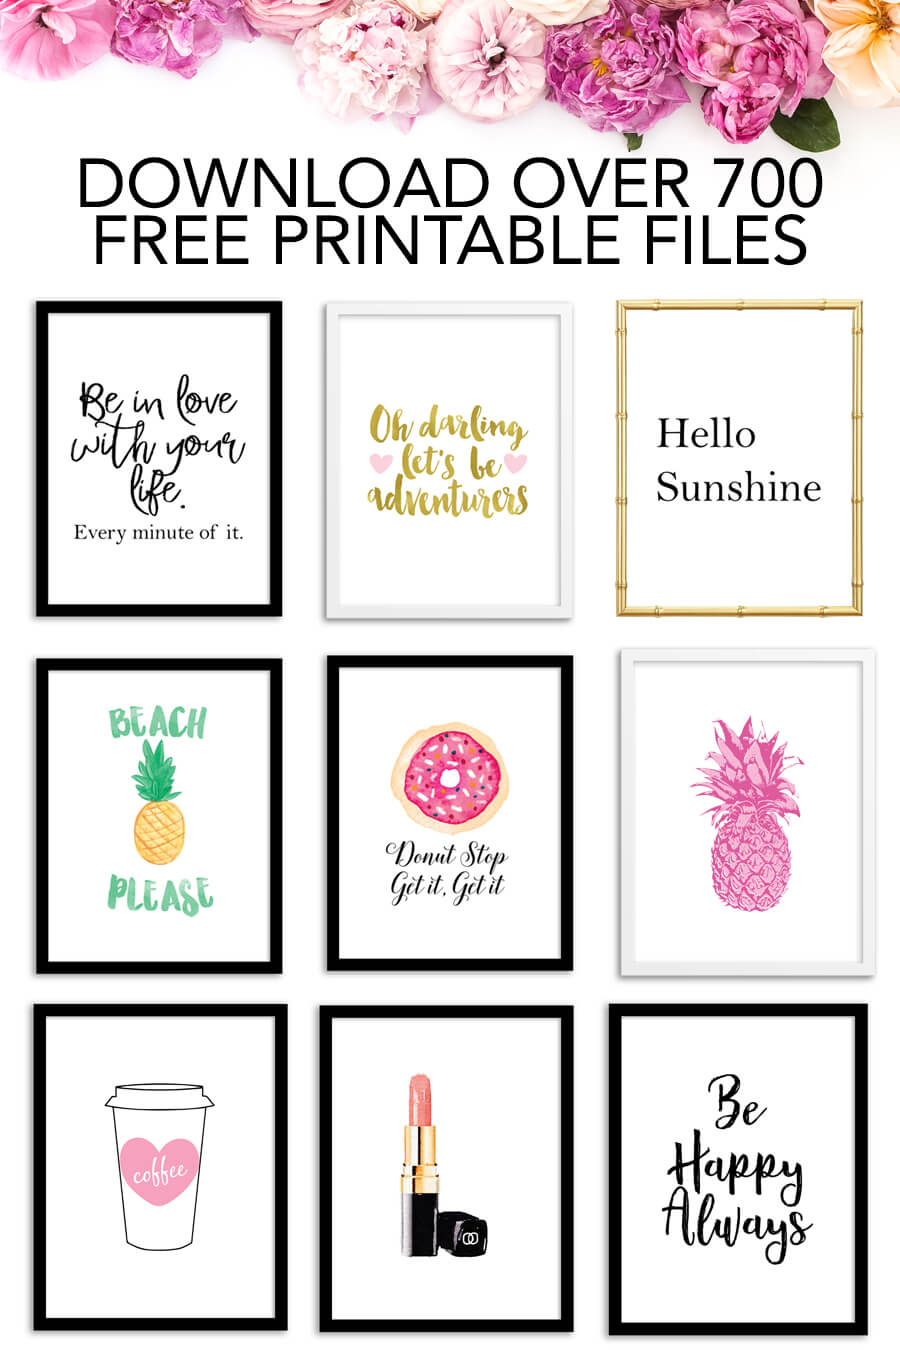 free printables download over 700 free printable files chicfetti